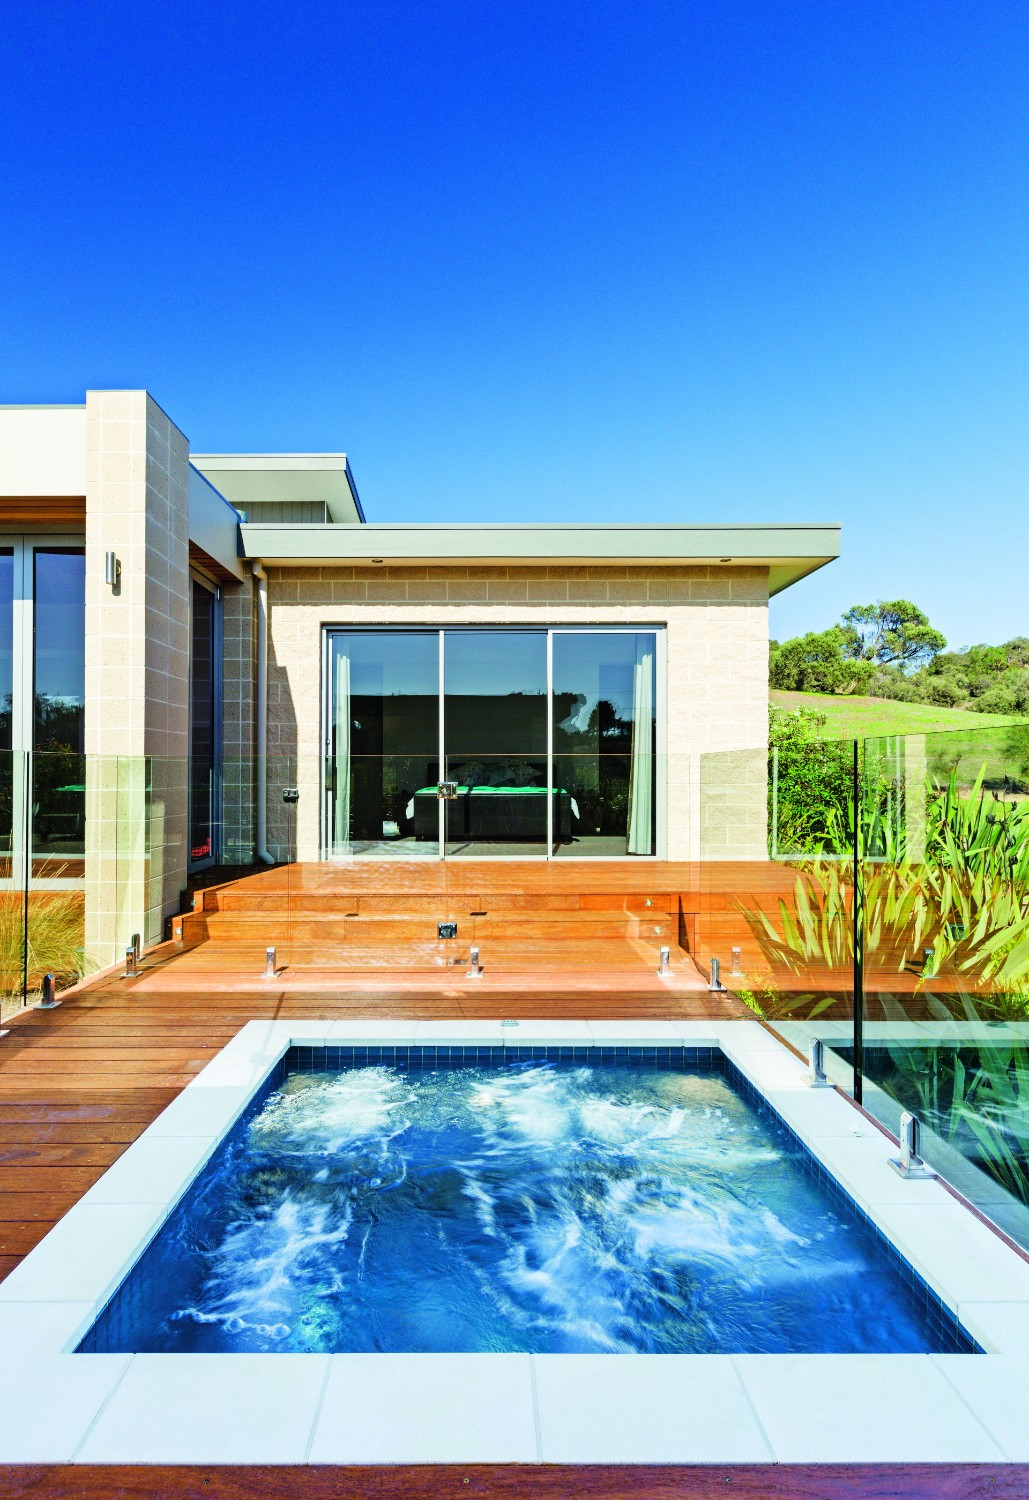 Country pool escape: rural tranquility - the straight-lined pool design complements the architect designed home